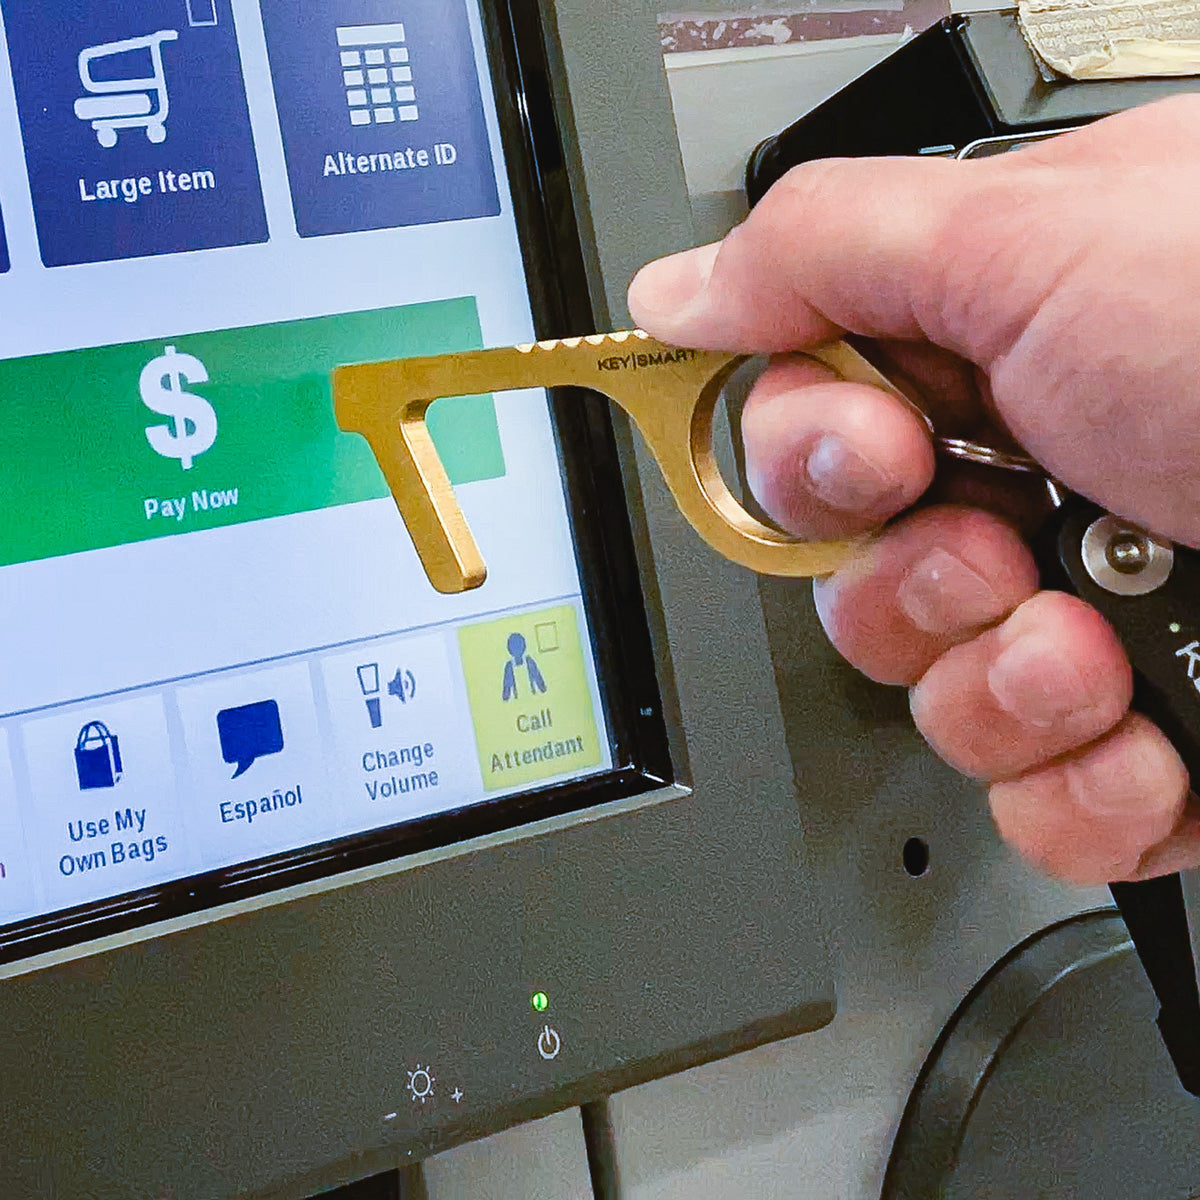 Touchscreens - Like store checkouts and digital signatures